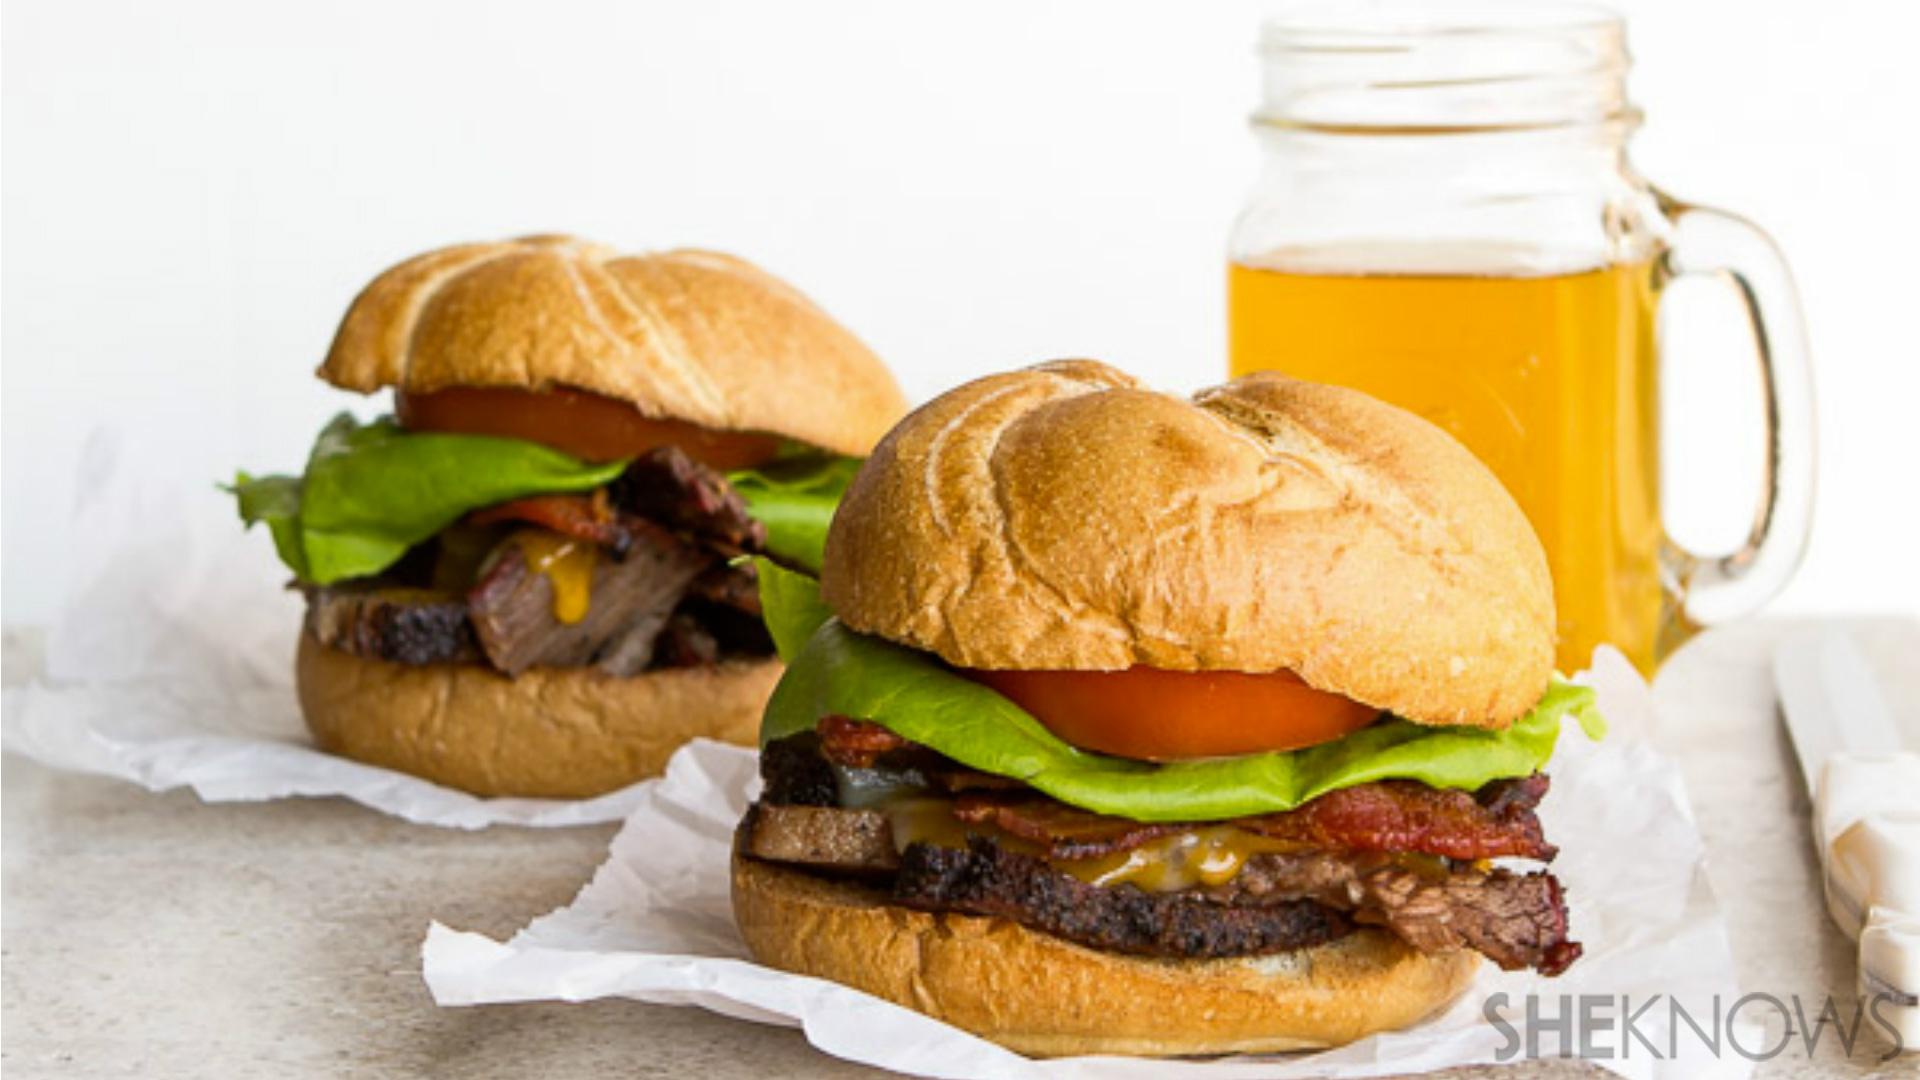 It's a BBLT. That's brisket, bacon, lettuce and tomato. And it's incredible.